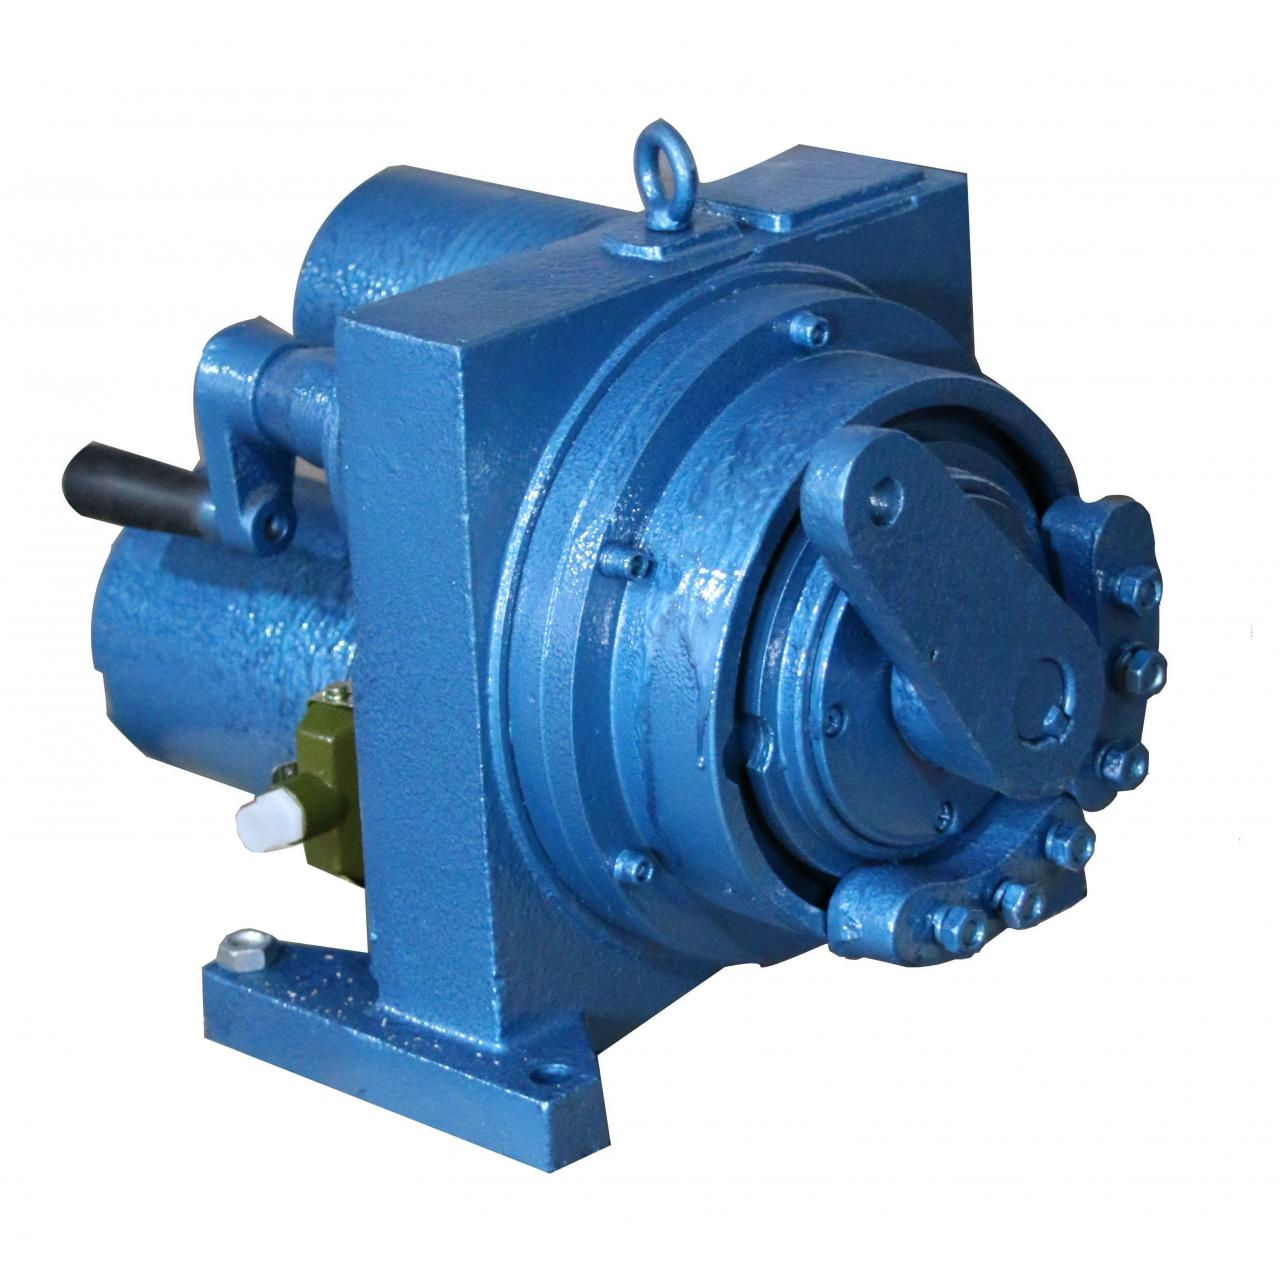 DKJ-M on-off electric actuator